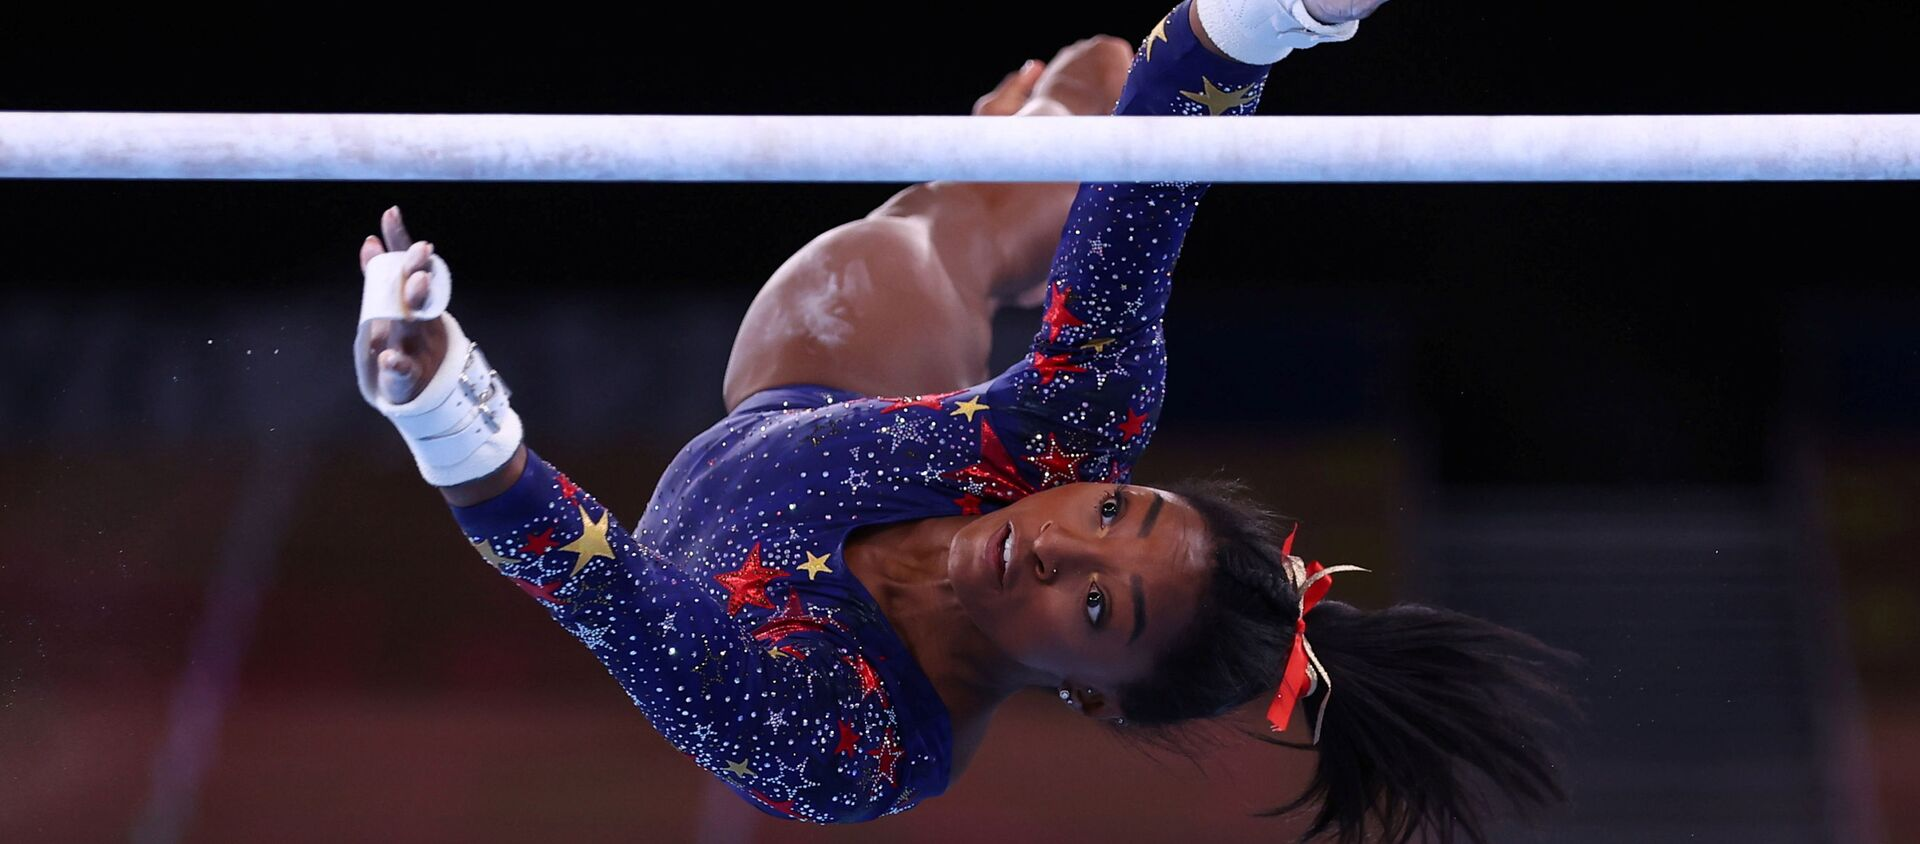 Tokyo 2020 Olympics - Gymnastics - Artistic - Women's Uneven Bars - Qualification - Ariake Gymnastics Centre, Tokyo, Japan - July 25, 2021. Simone Biles of the United States in action during the uneven bars REUTERS/Mike Blake/File photo  SEARCH OLYMPICS DAY 3 FOR TOKYO 2020 OLYMPICS EDITOR'S CHOICE, SEARCH REUTERS OLYMPICS TOPIX FOR ALL EDITOR'S CHOICE PICTURES. - Sputnik International, 1920